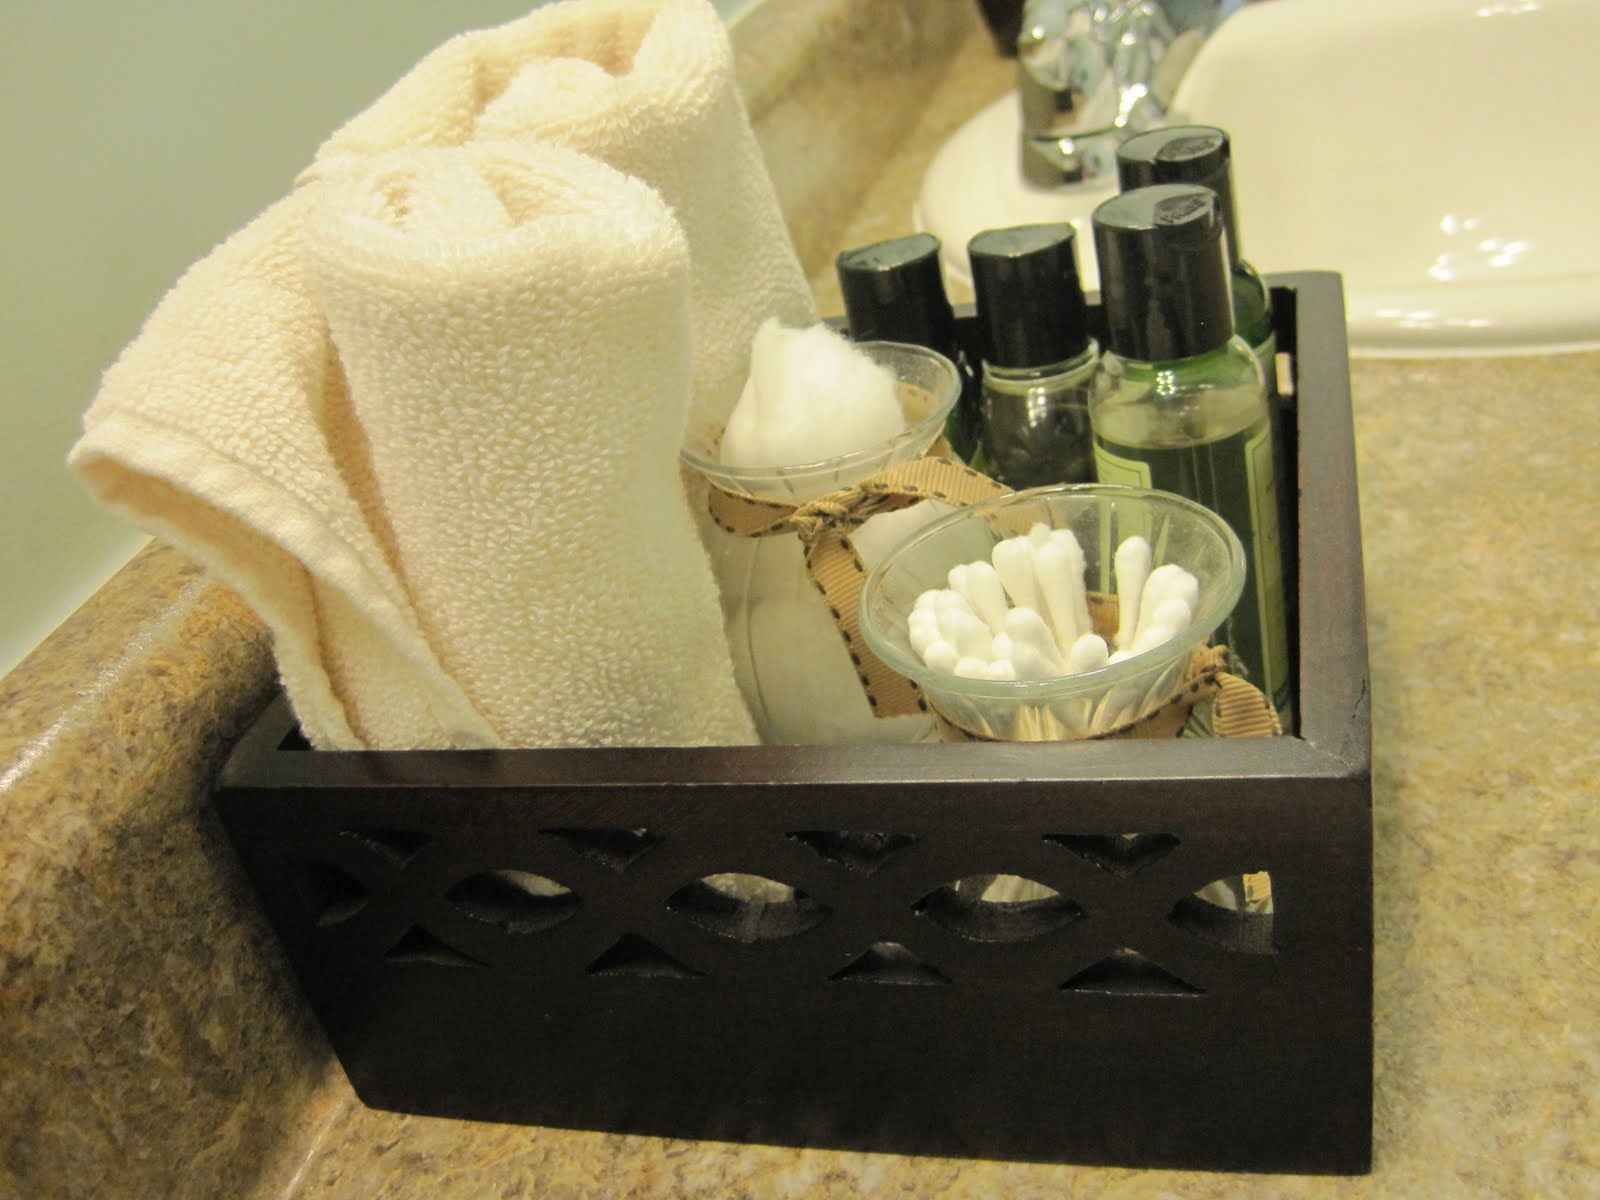 Perfect Toiletries For Guest Bathroom In Small Basket (We Bring Home The Hotel  Shampoo, Sewing